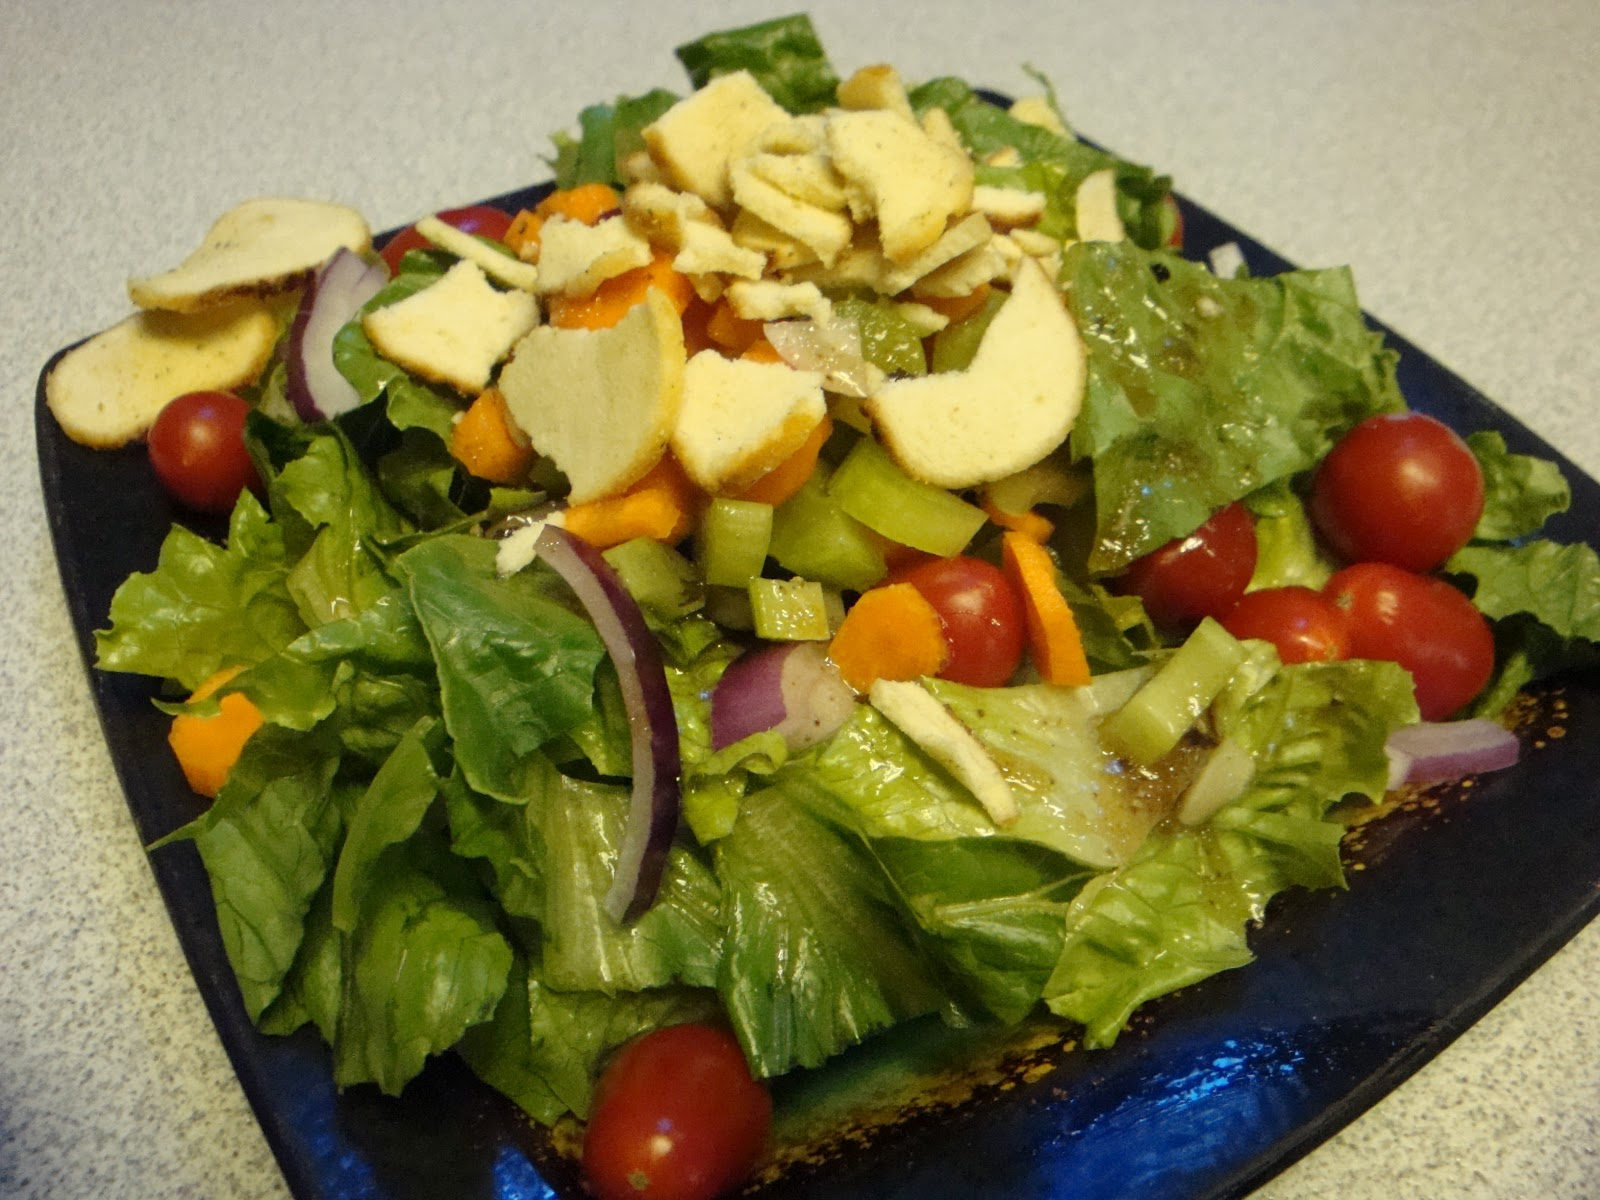 Garden salad with romaine lettuce, red onion, grape tomatoes, carrots ...